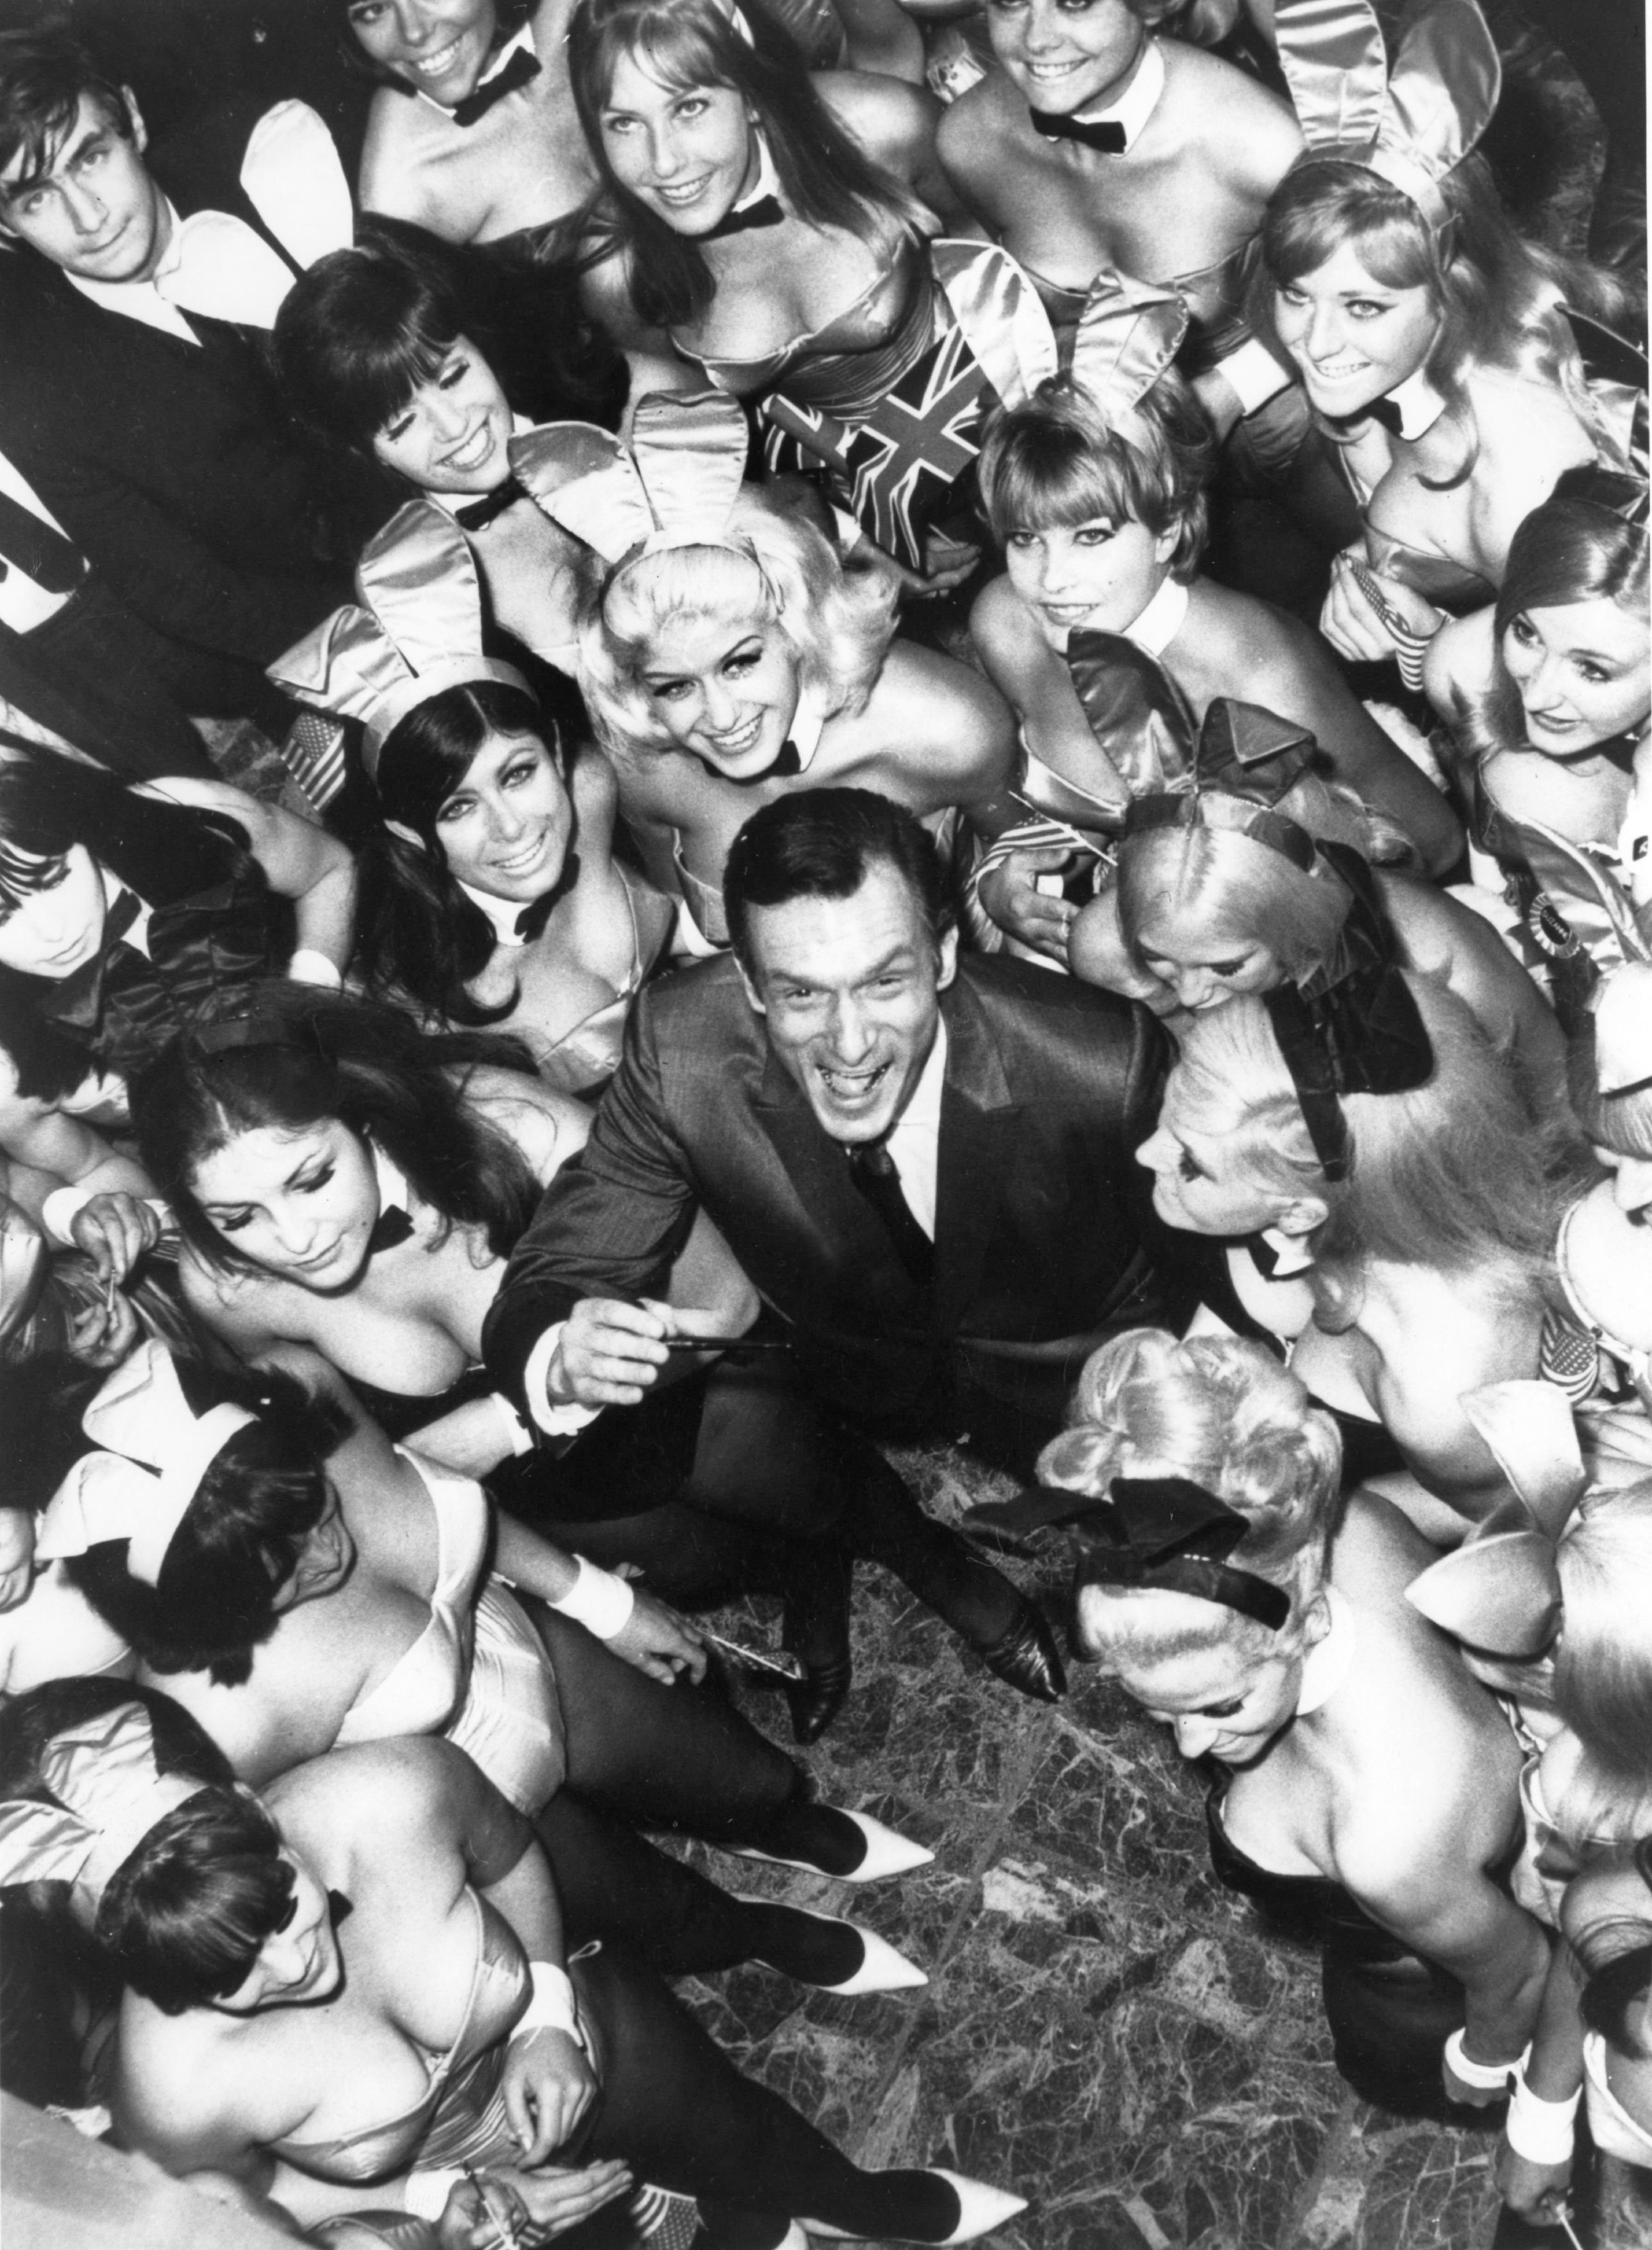 UNITED KINGDOM - AUGUST 26:  Hugh Hefner, The Director Of The Play-Boy Newspaper And Club, Pictured Surrounded By 50 Bunnies On June 27, 1966. They Were To Work At His New Club In London  (Photo by Keystone-France/Gamma-Keystone via Getty Images)